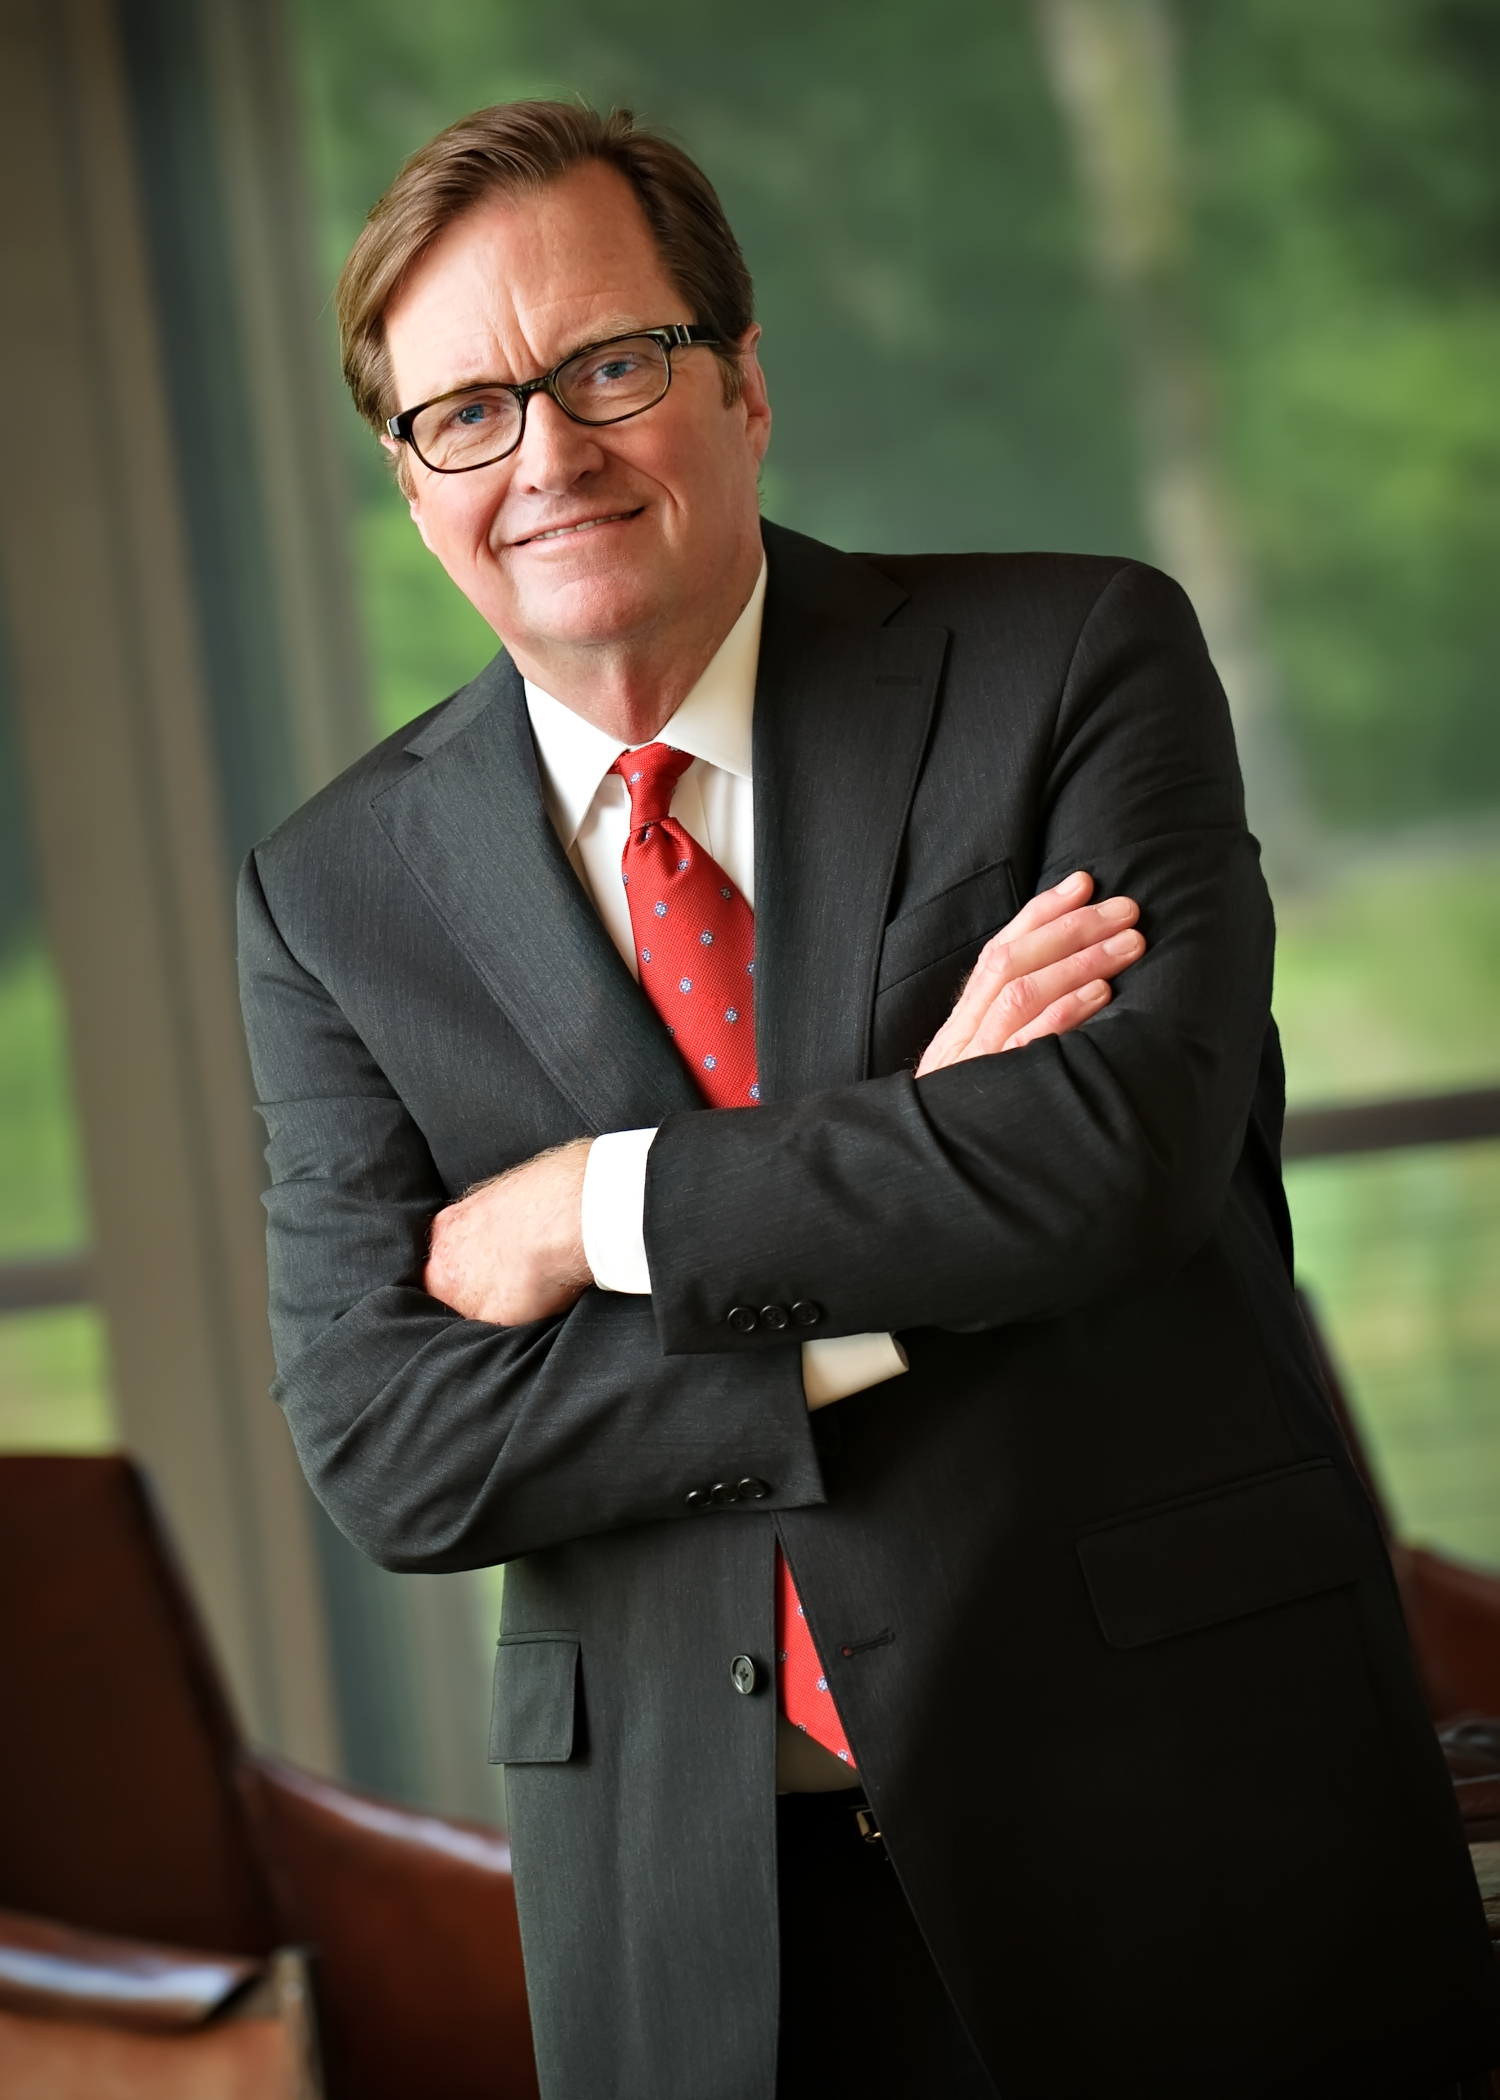 Merrill Stewart, Jr. President and Founder of Stewart Perry